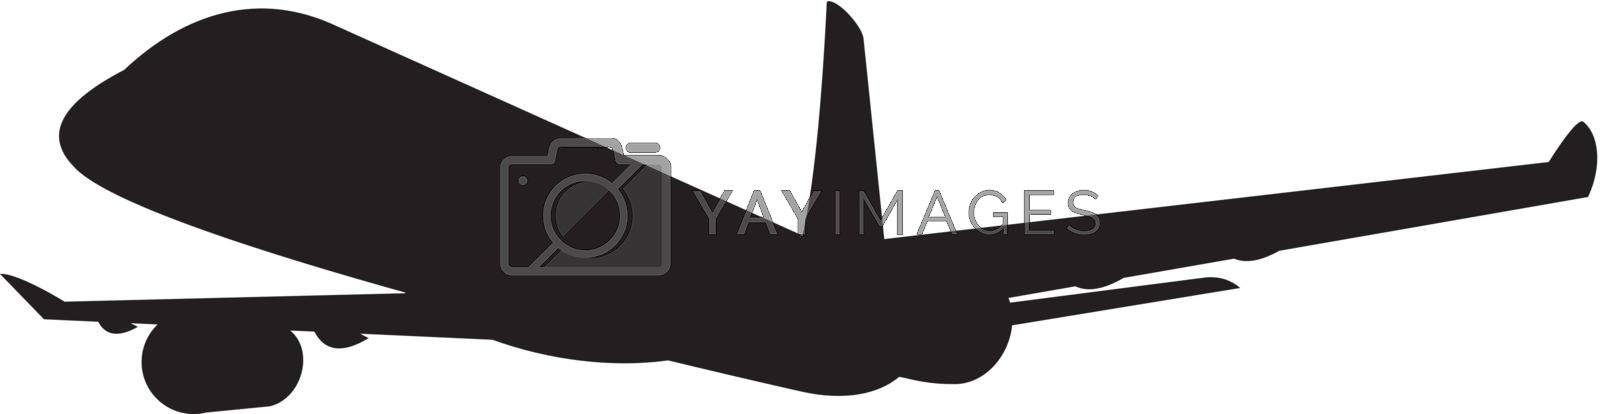 Illustration of a commercial jet plane airliner silhouette on isolated background.